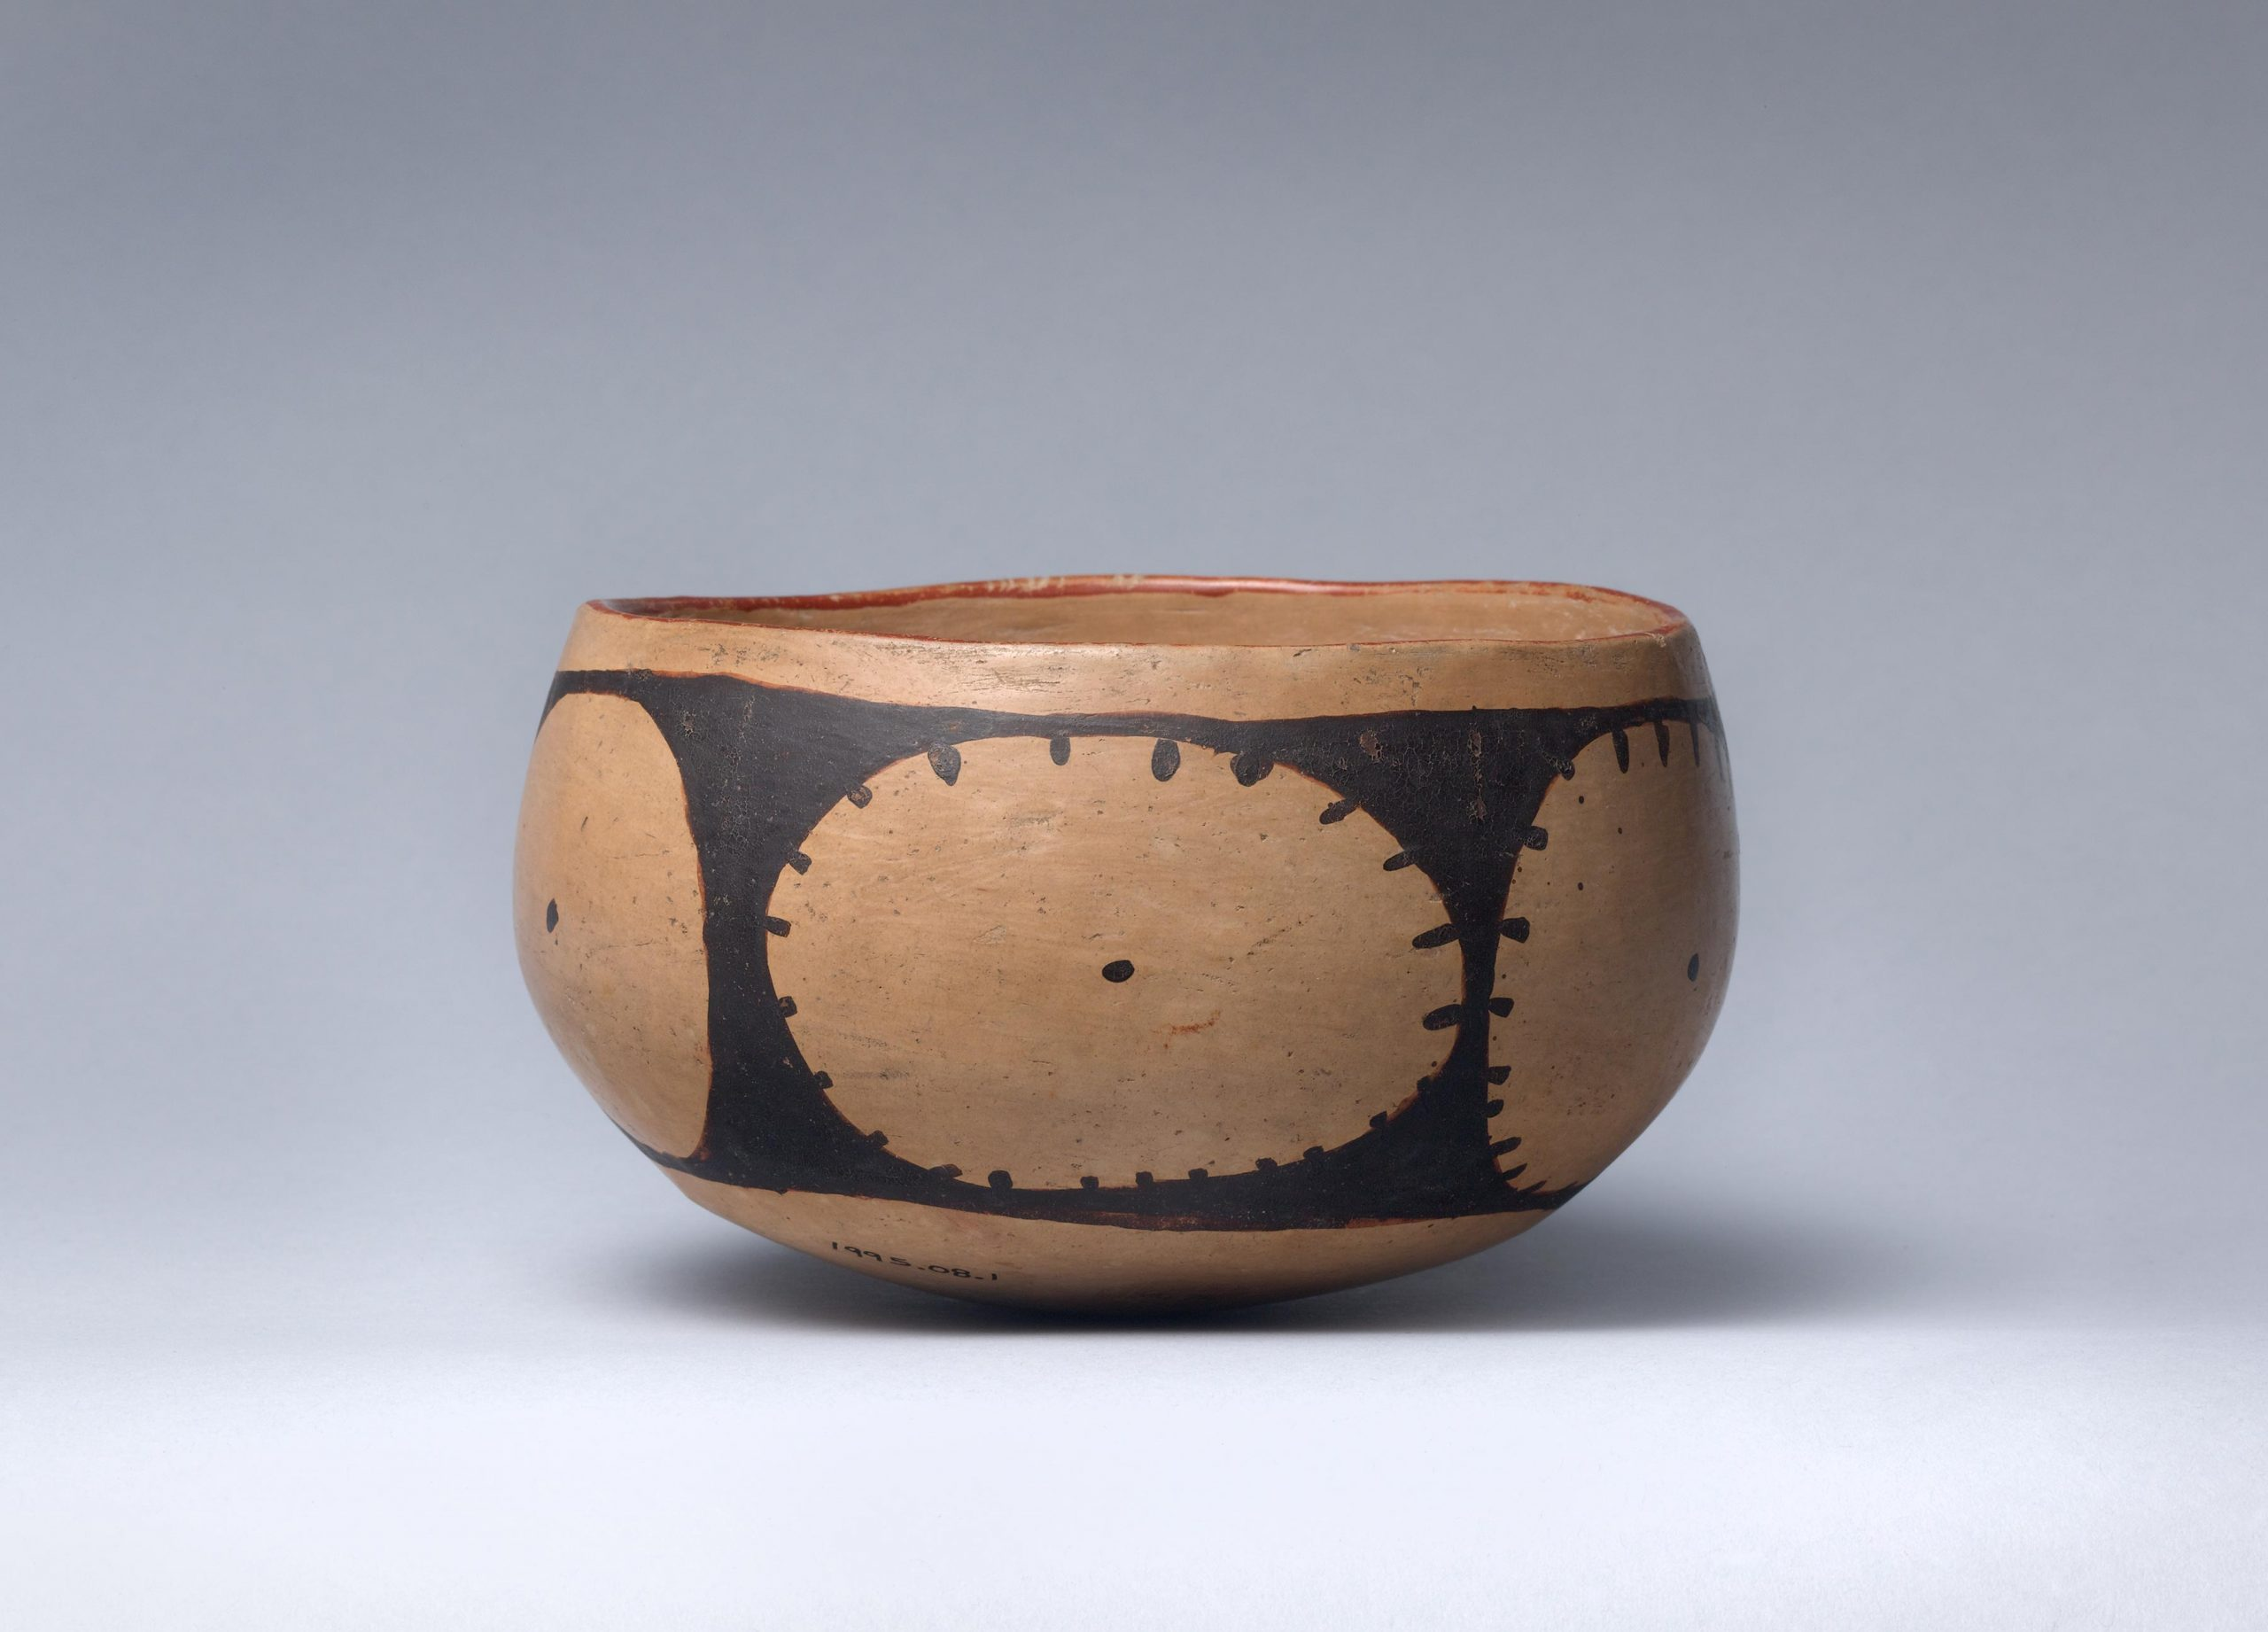 Decorative ceramic bowl covered with complex, interlocking geometrical designs with two abstract rabbit heads on either side.